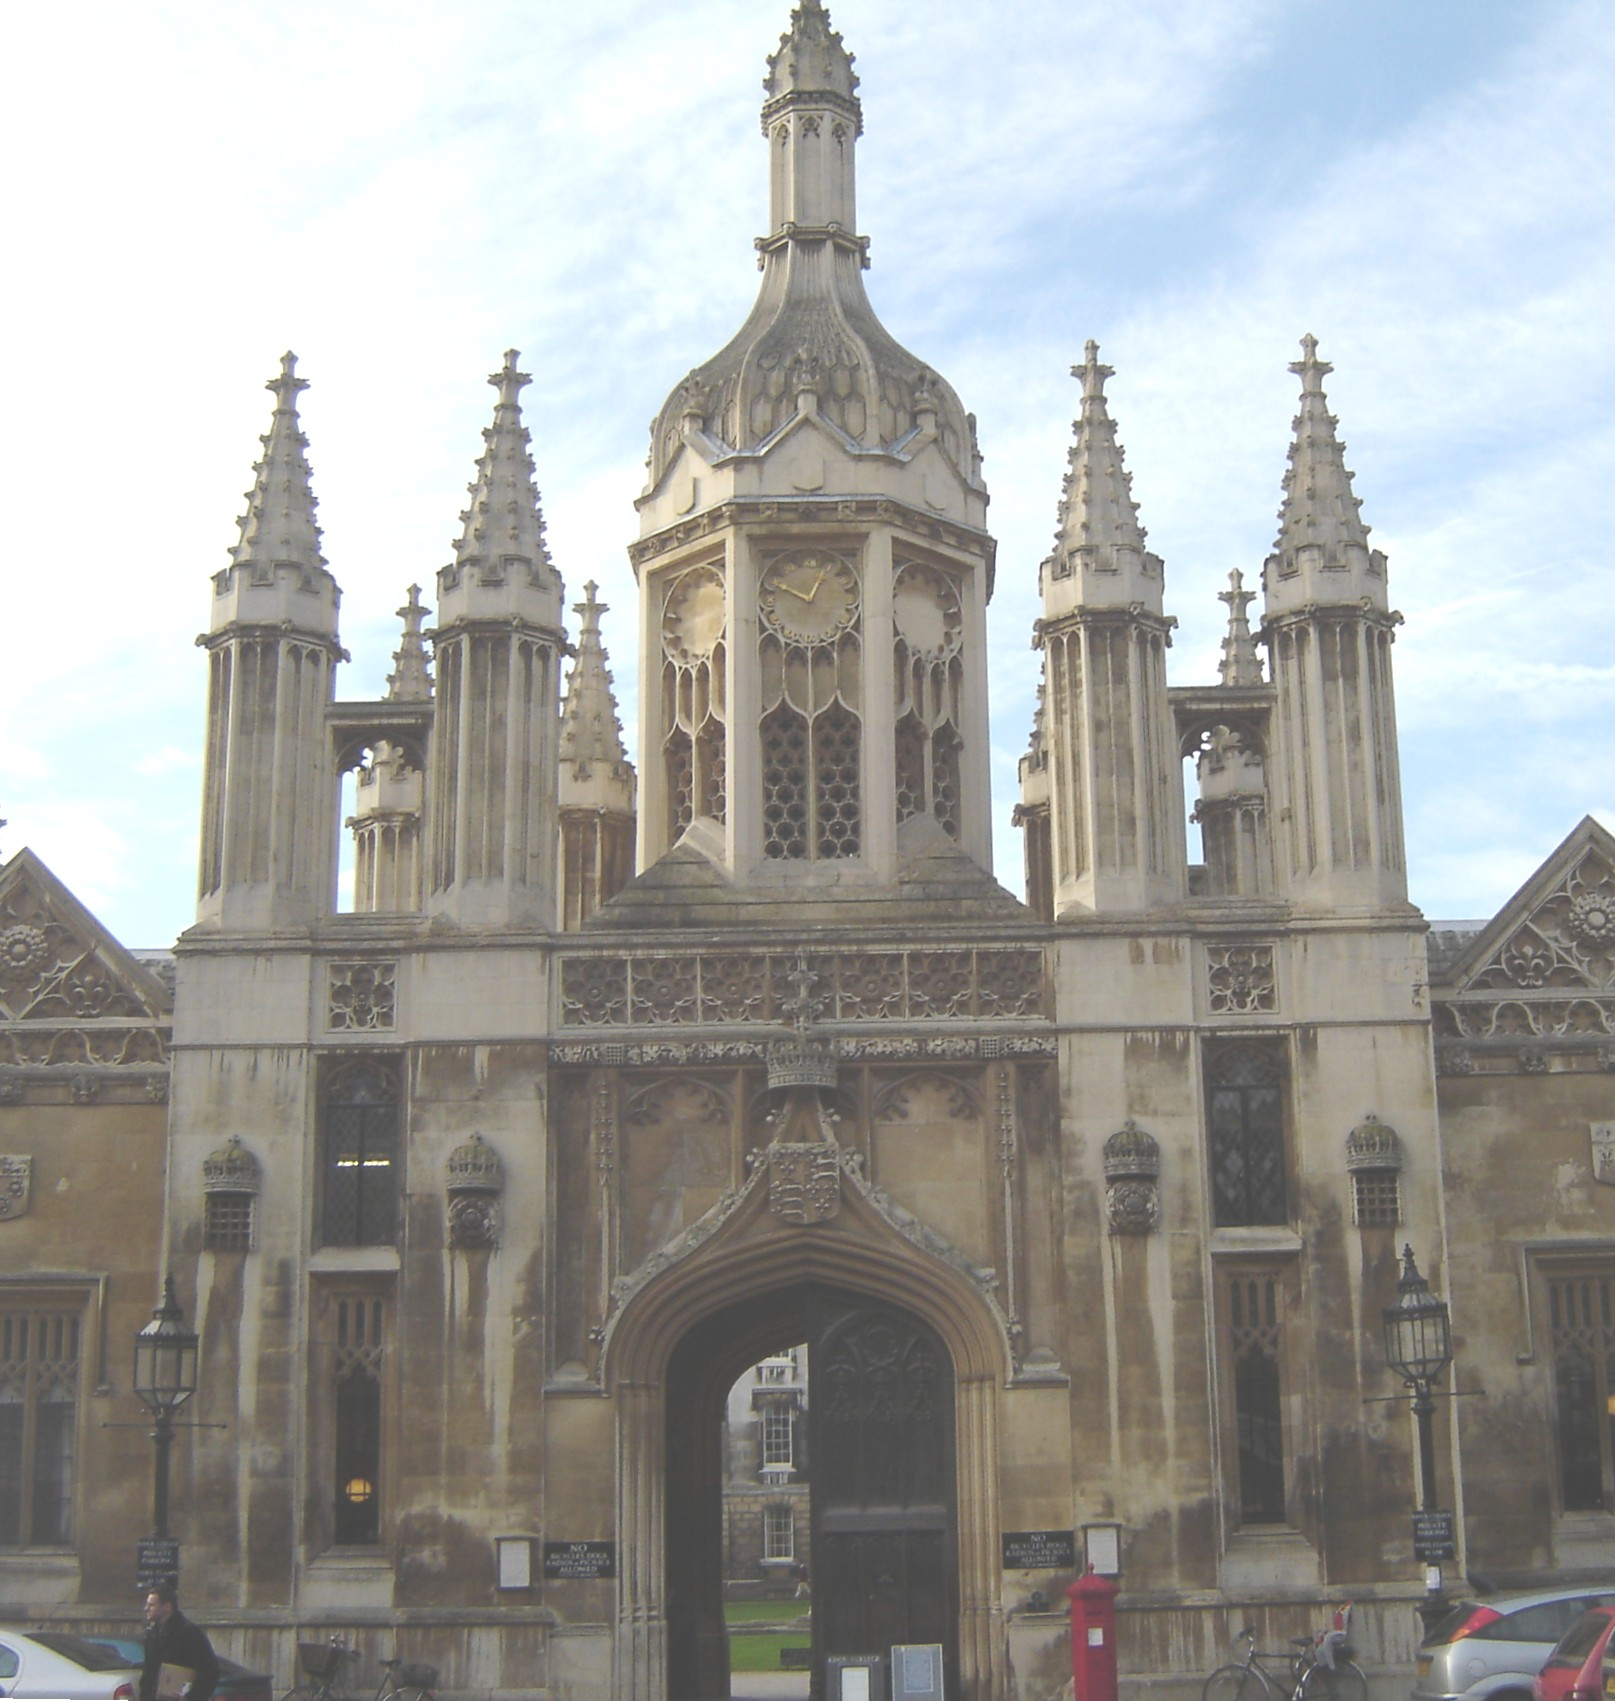 An Entrance to Kings College Cambridge